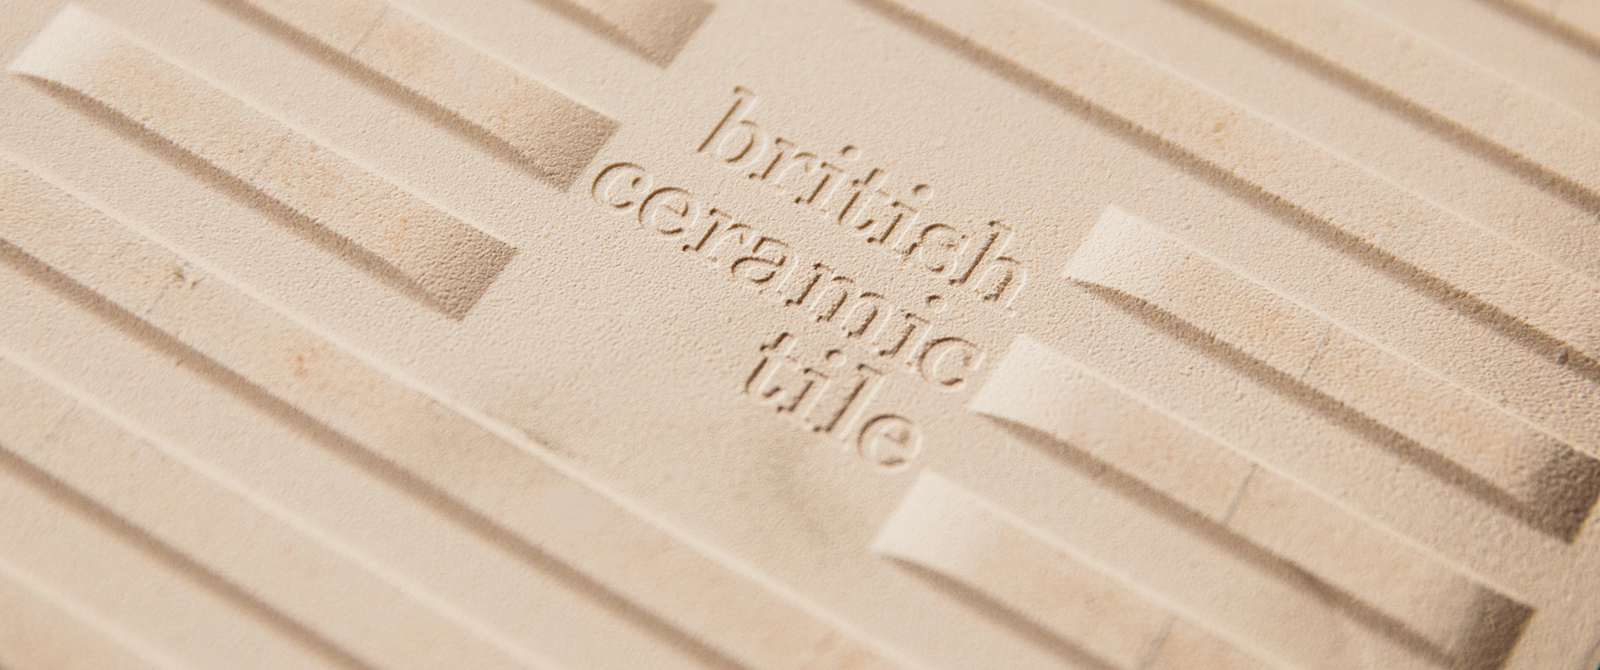 British ceramic tile we create beautiful tiles for your home environment dailygadgetfo Choice Image